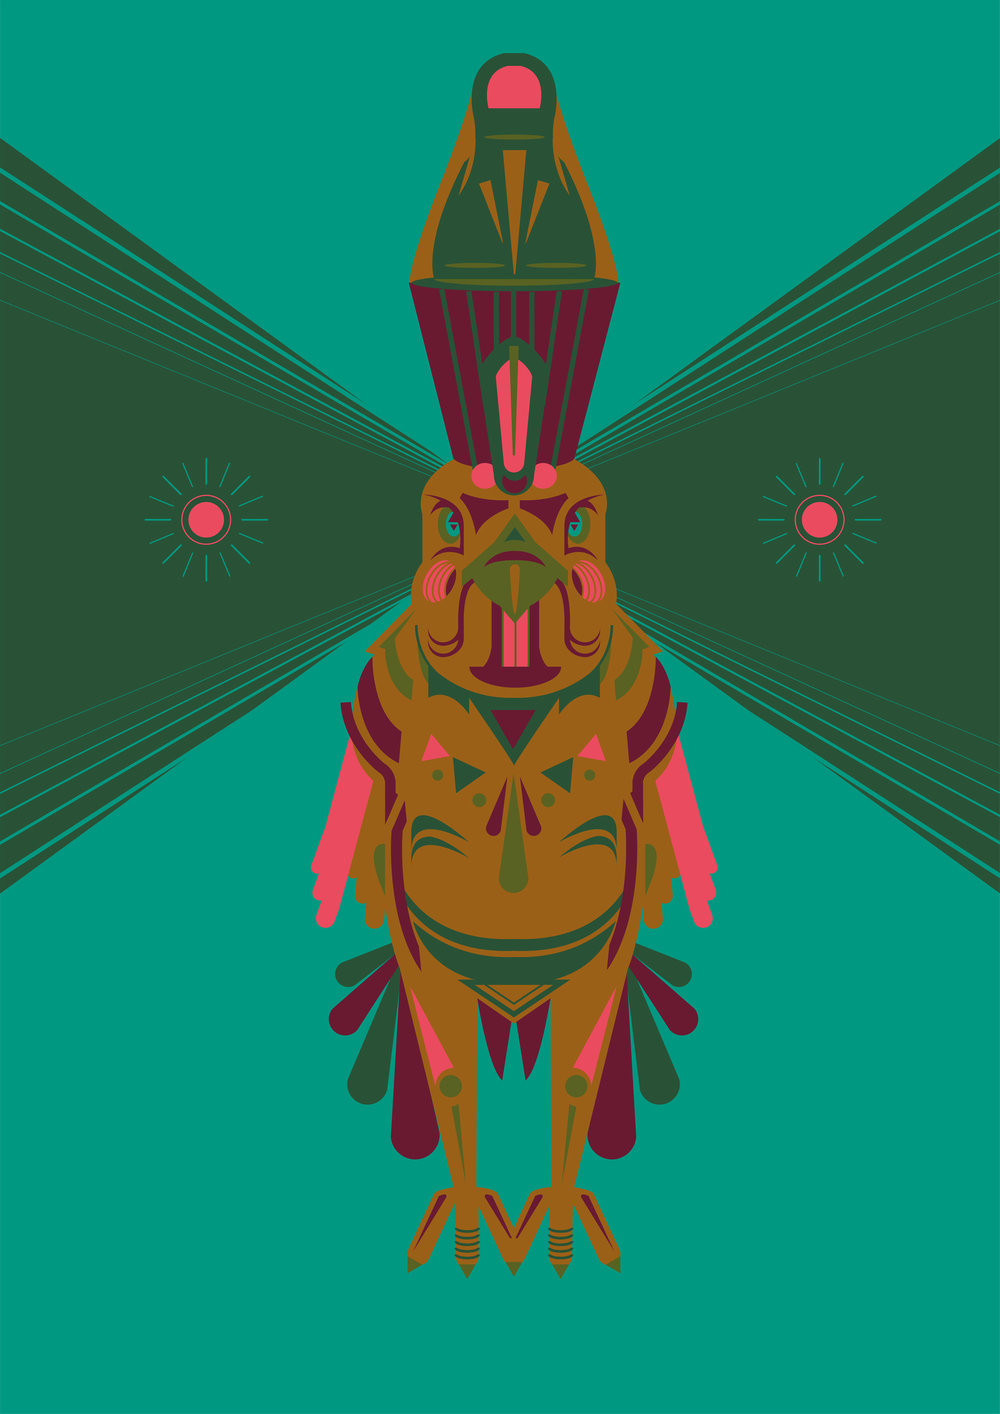 horus_egyptian_god_illustration_vector_phist.jpg